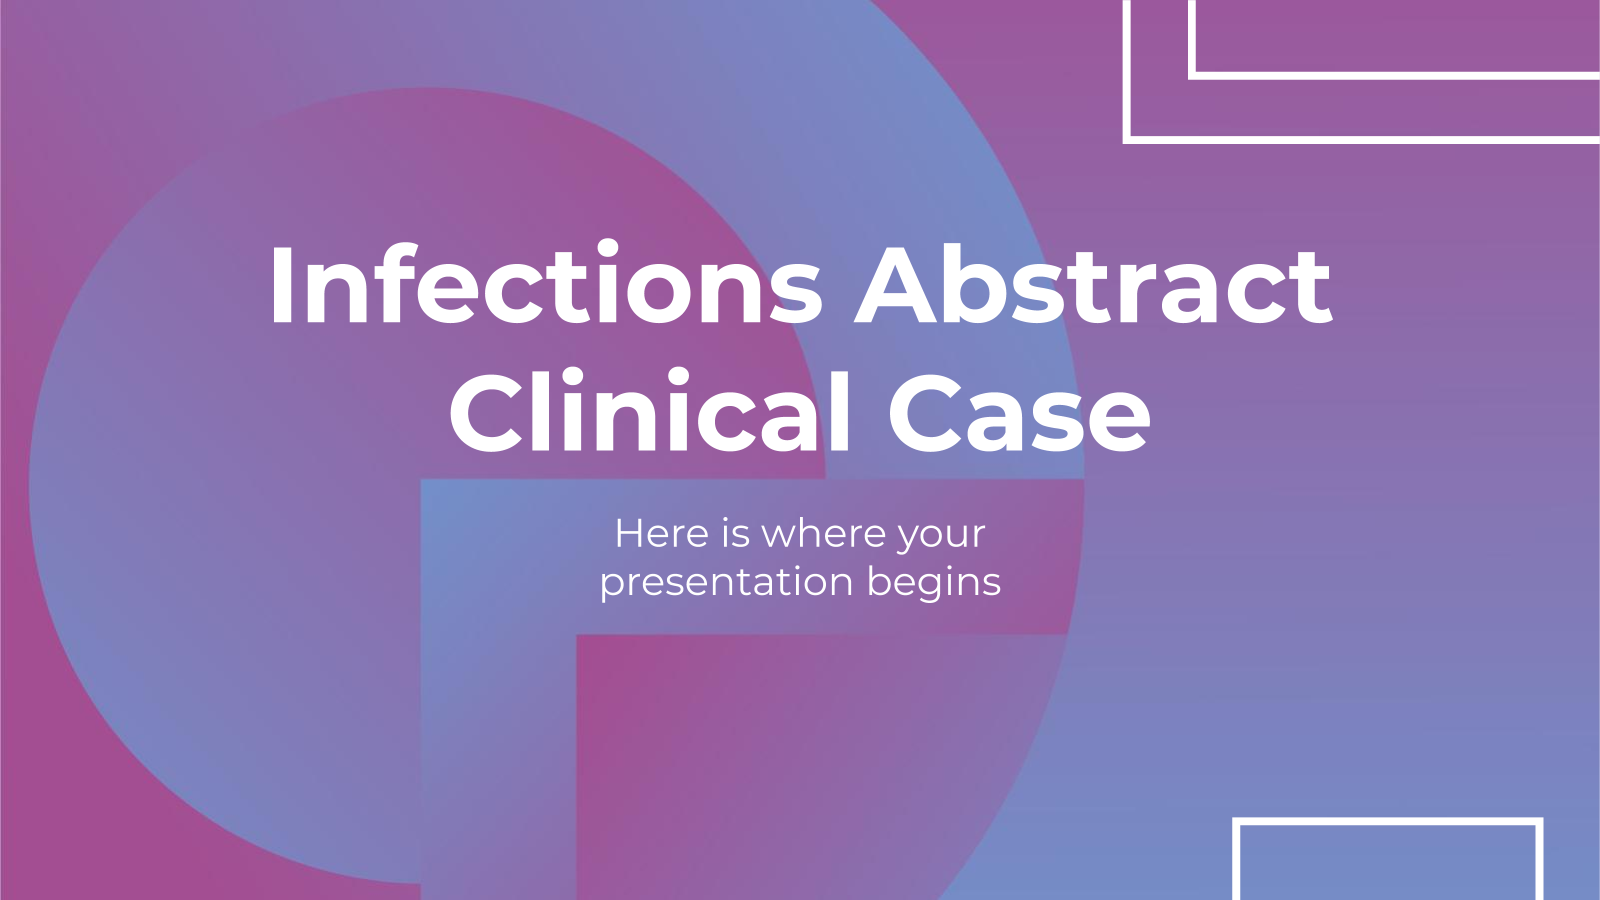 Infections Abstract Clinical Case presentation template